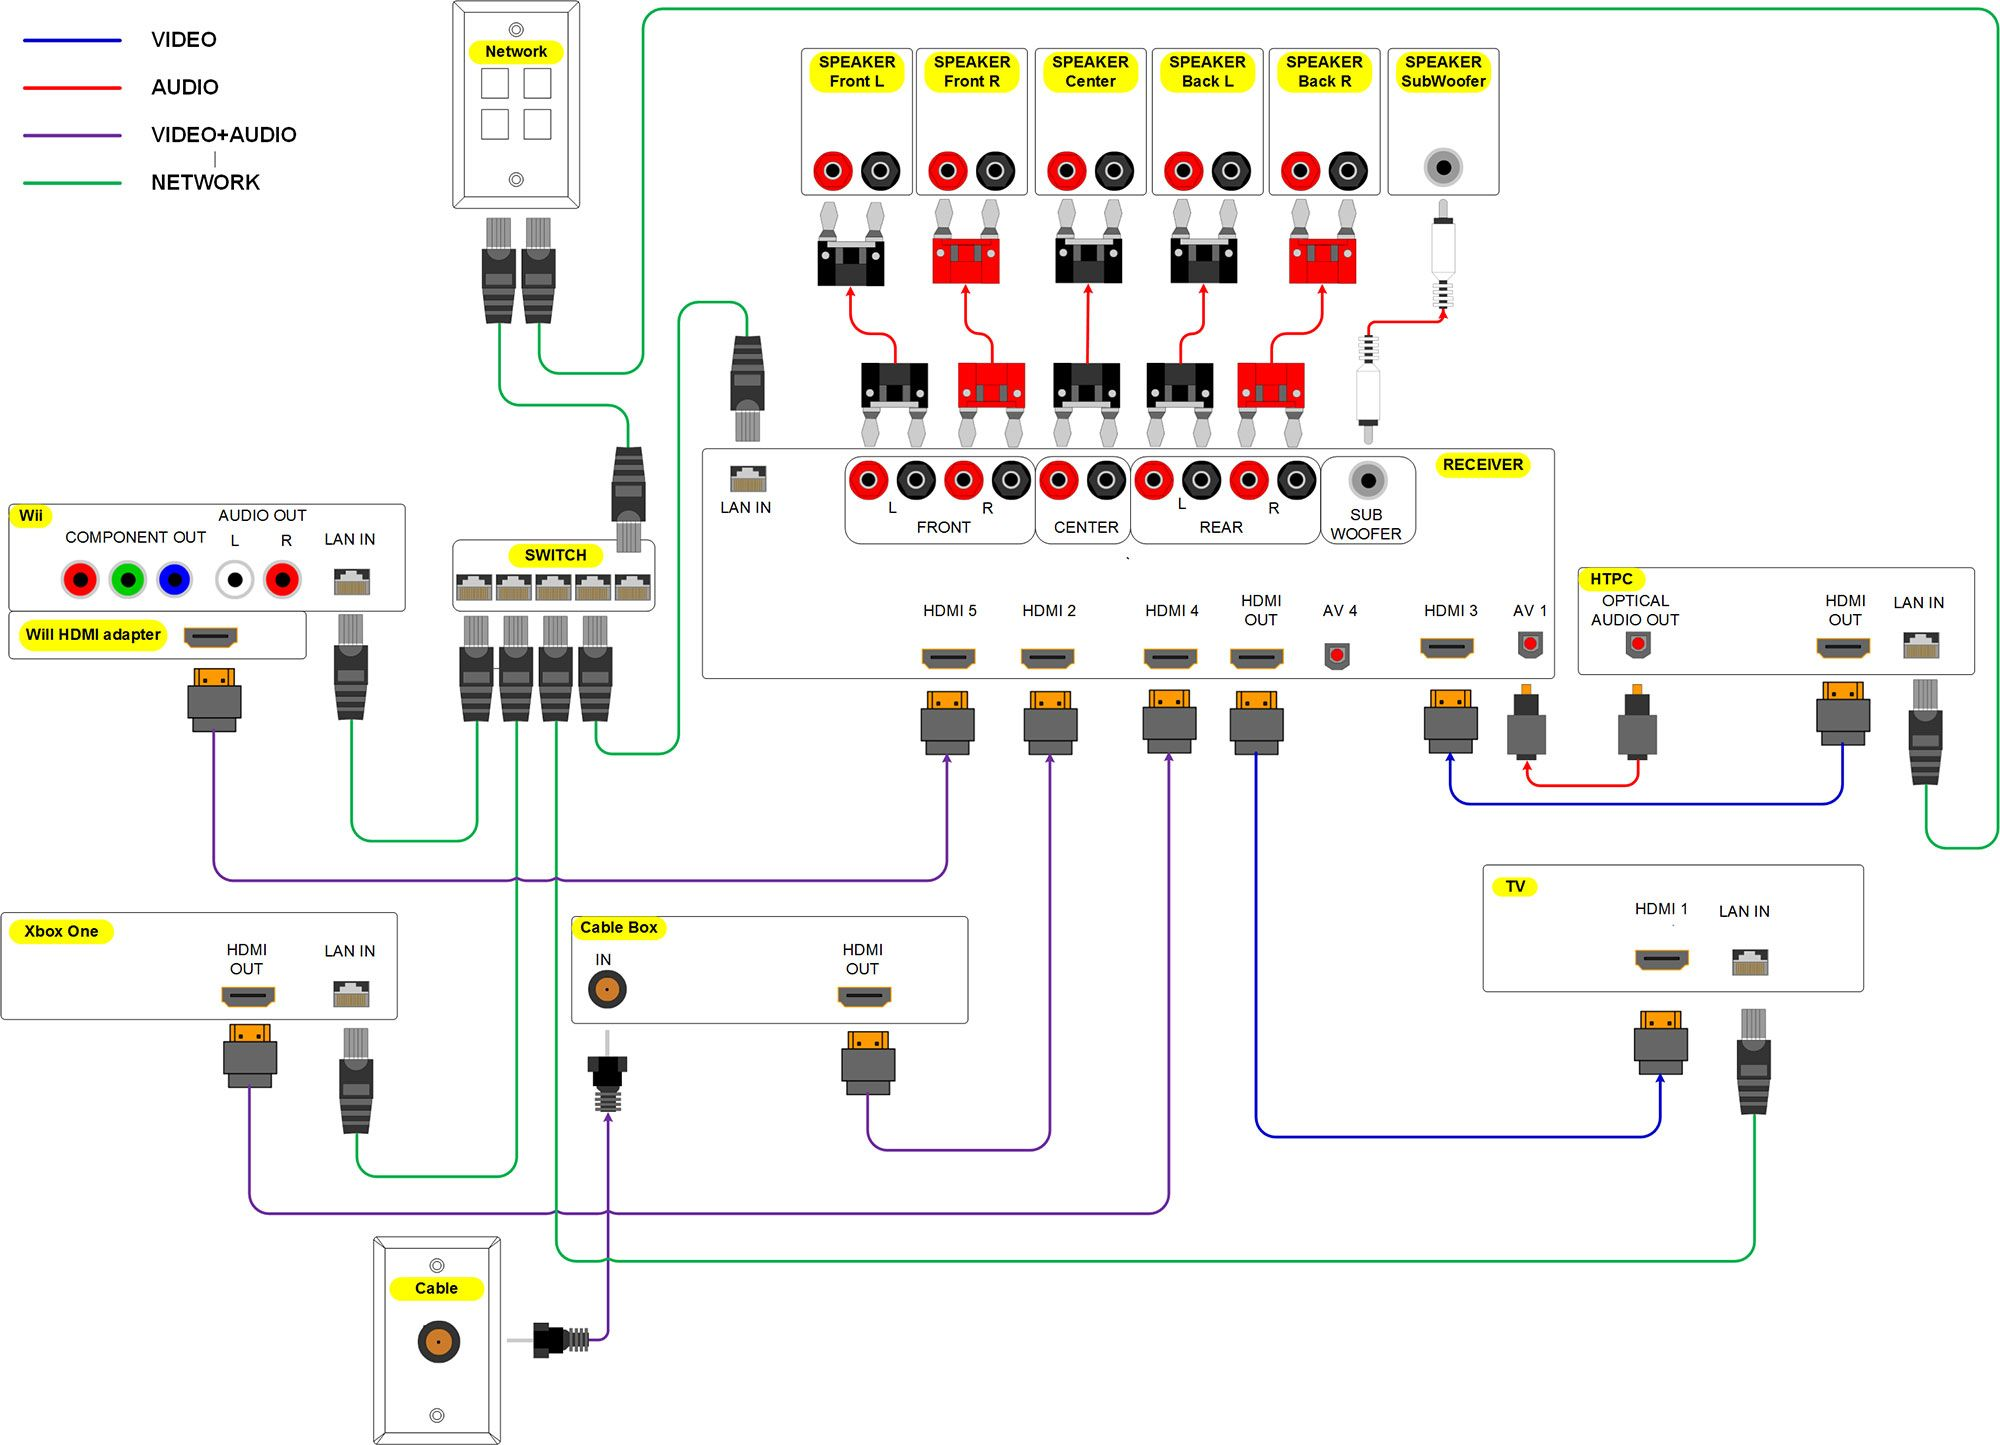 home theater wiring diagram click it to see the big 2000 pixel wide  [ 2000 x 1445 Pixel ]